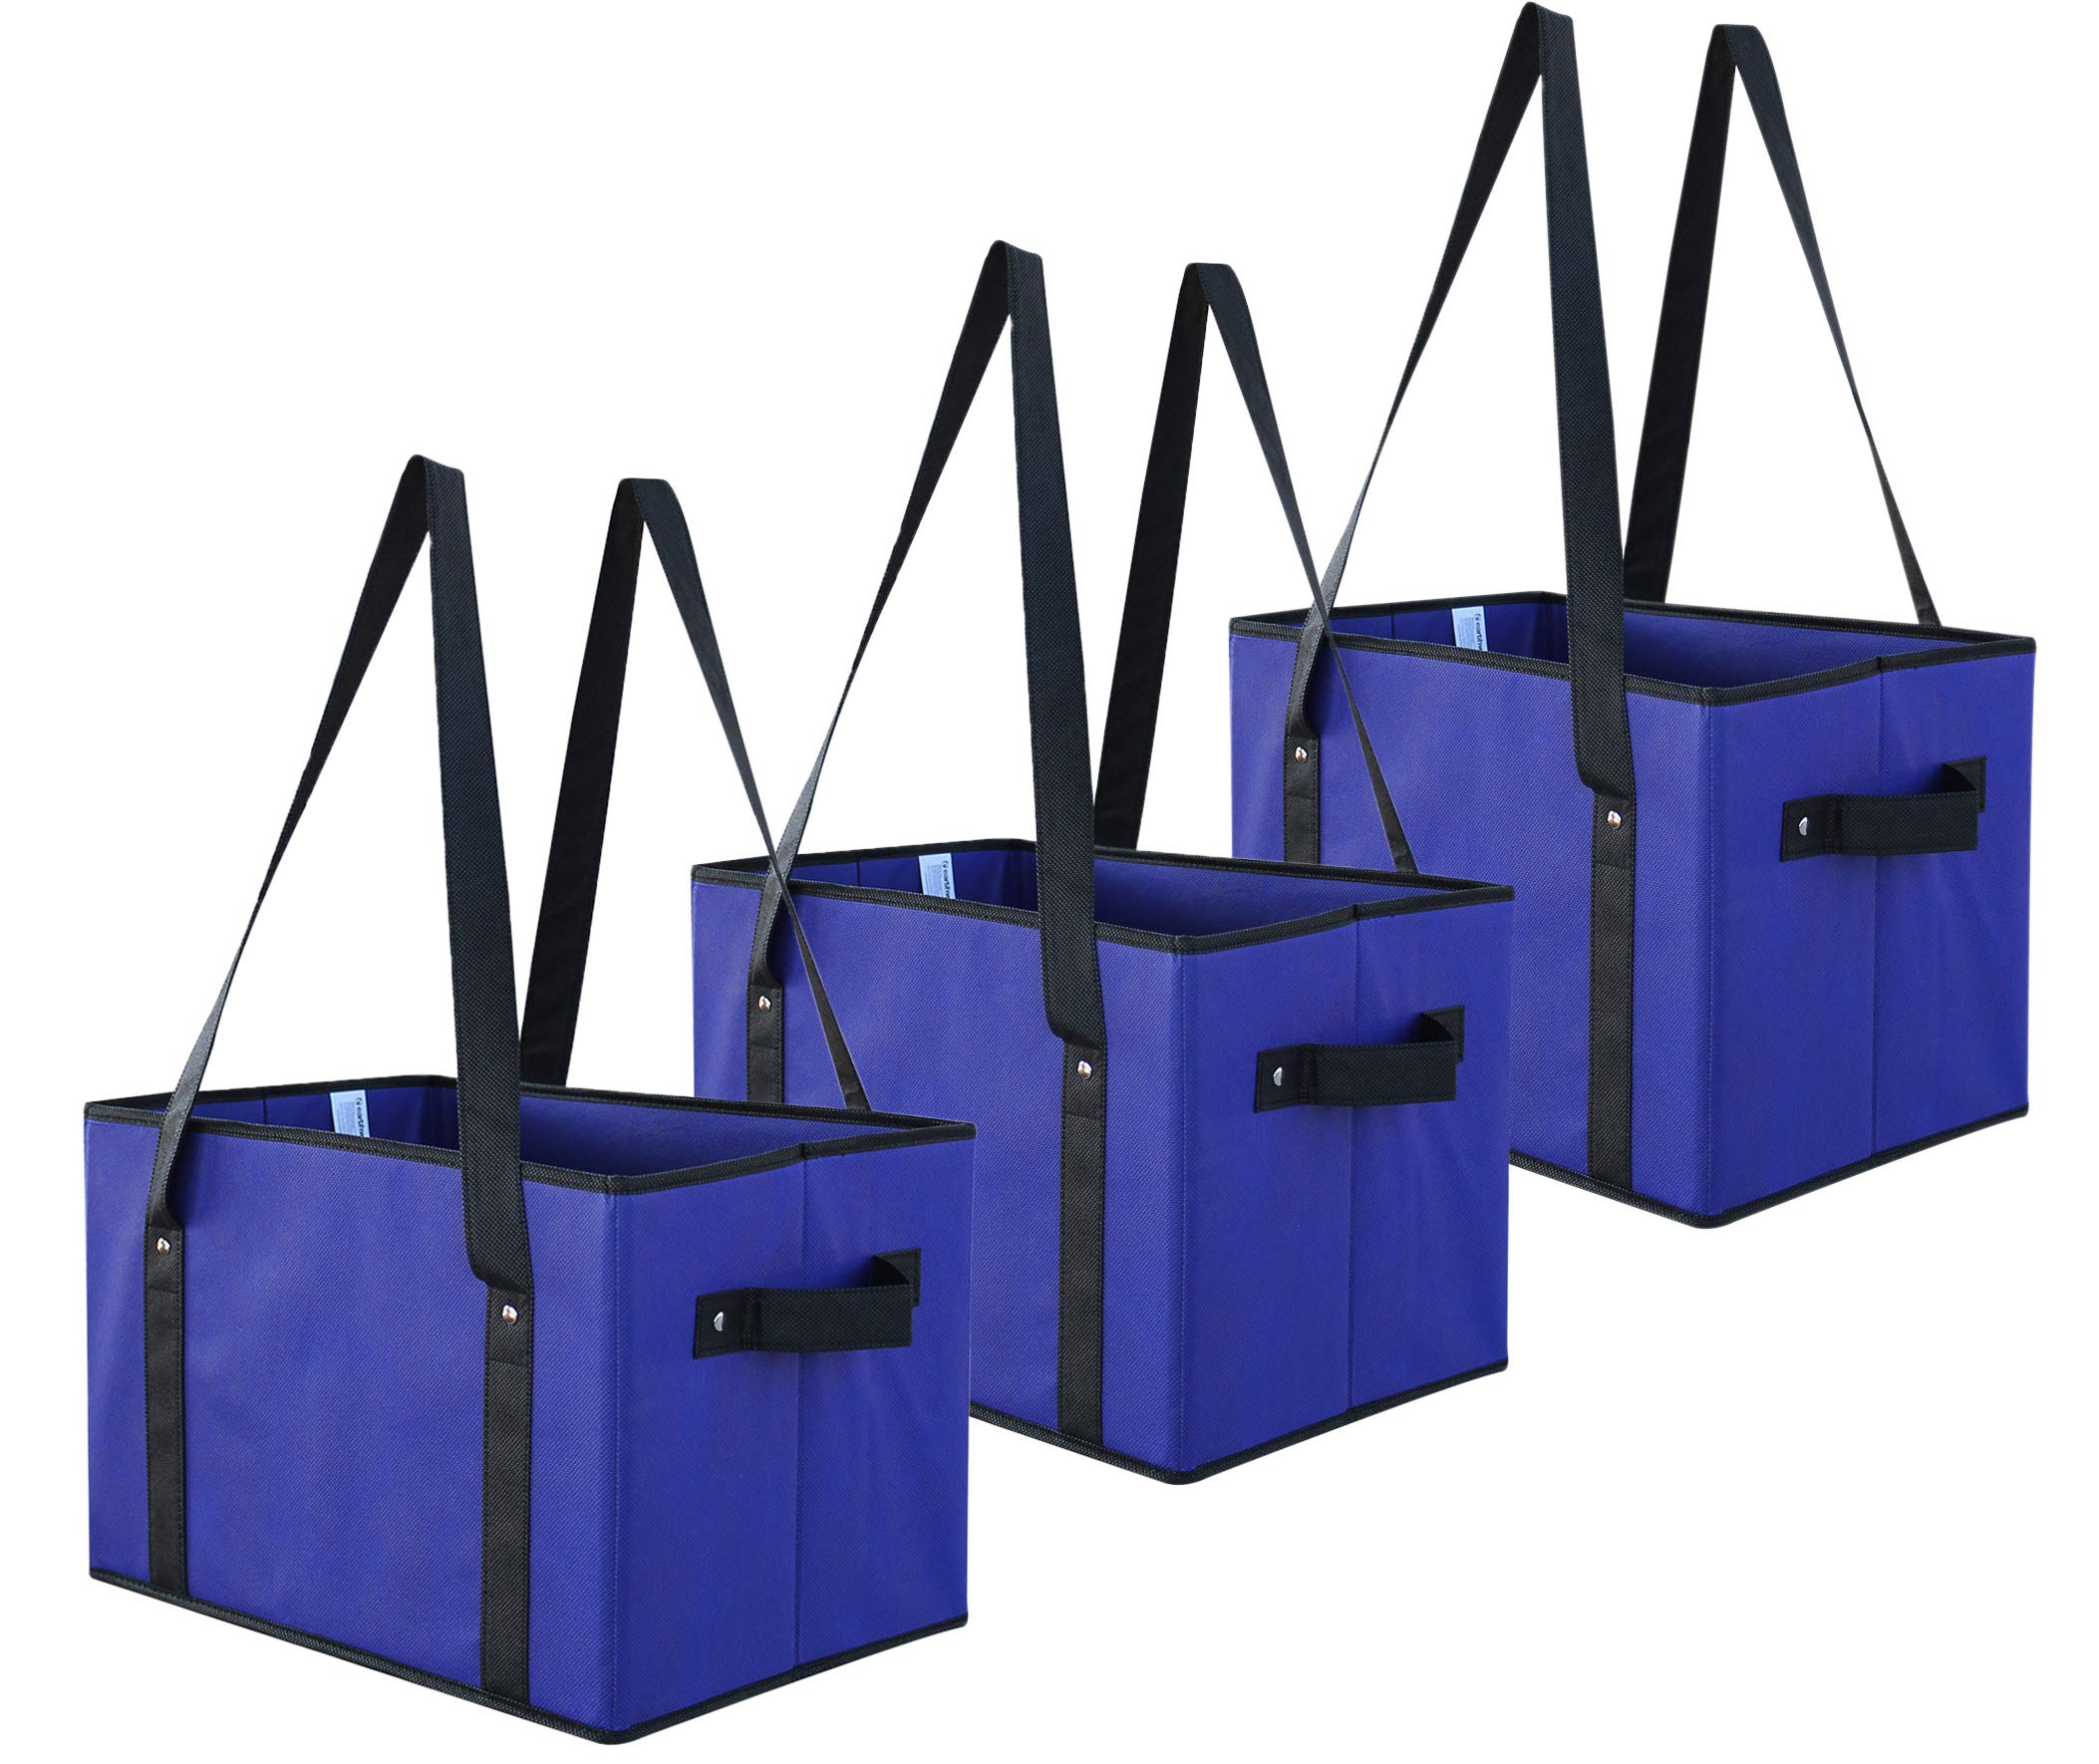 Earthwise Deluxe Collapsible Reusable Shopping Box Grocery Bag Set with Reinforced Bottom Storage Boxes Bins Cubes (Royal) Catering Food Delivery Temperature control by EarthWise